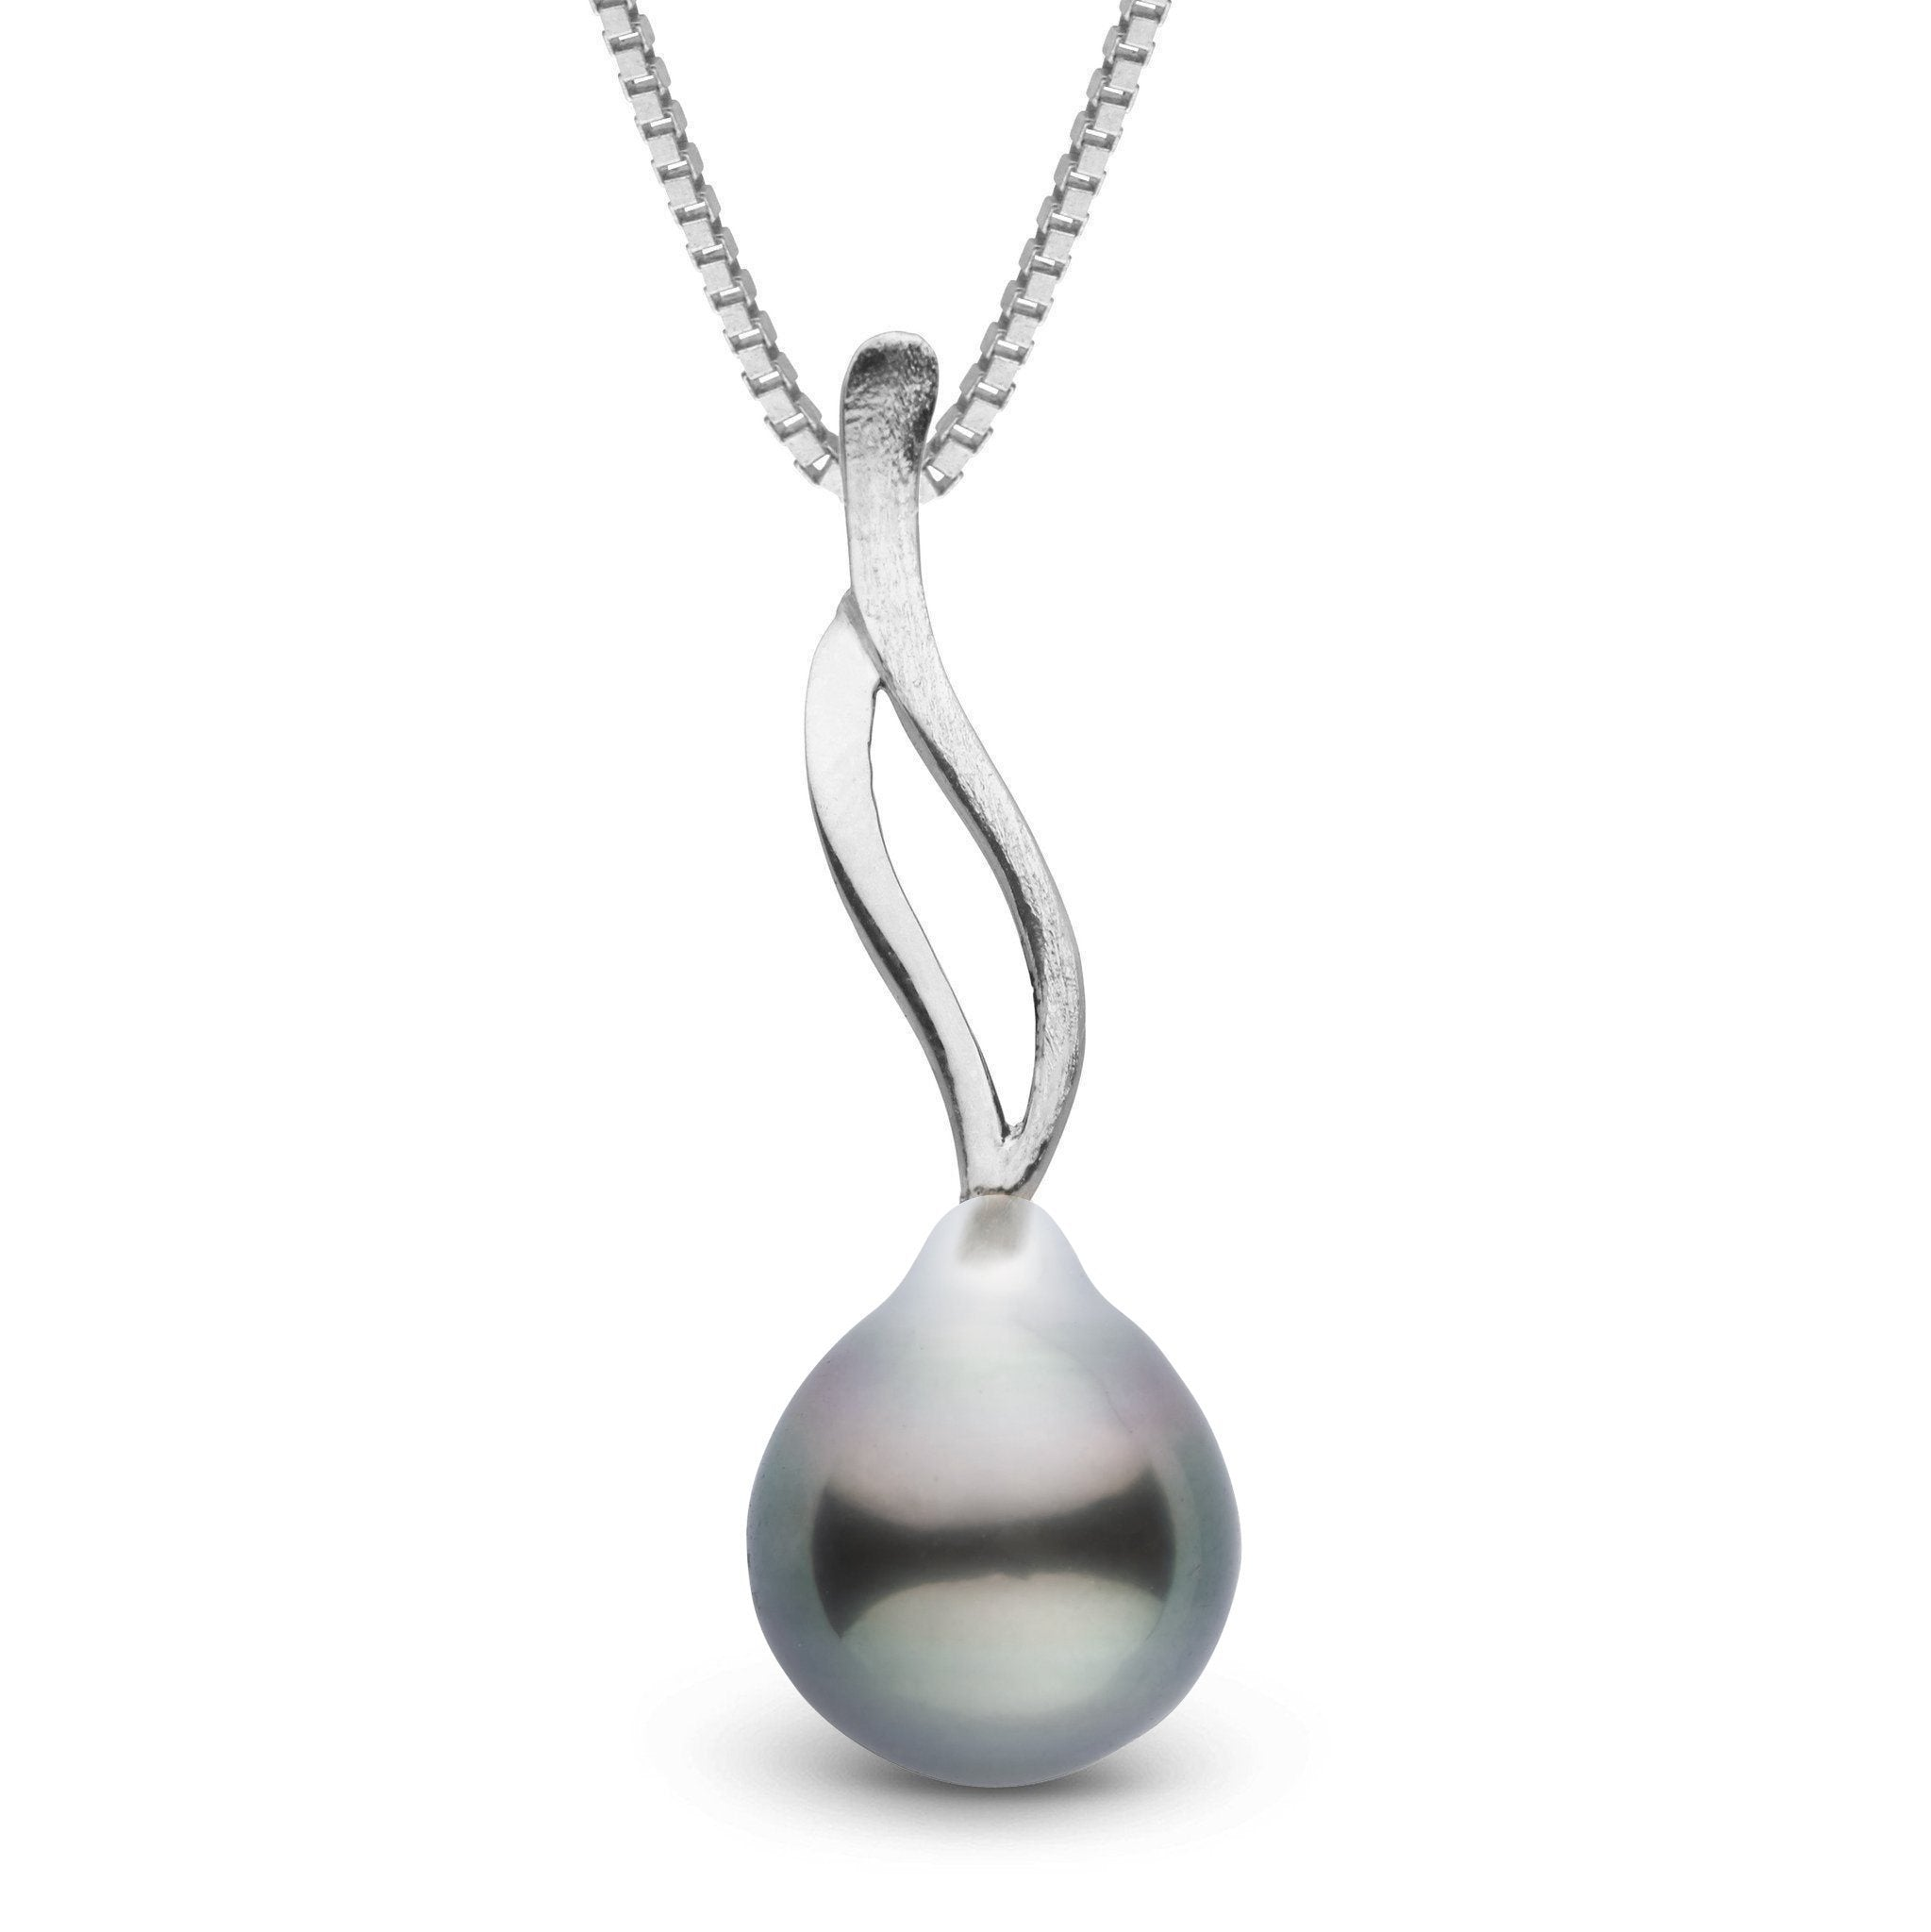 Wisp Collection Tahitian Baroque 9.0-10.0 mm Pearl Pendant